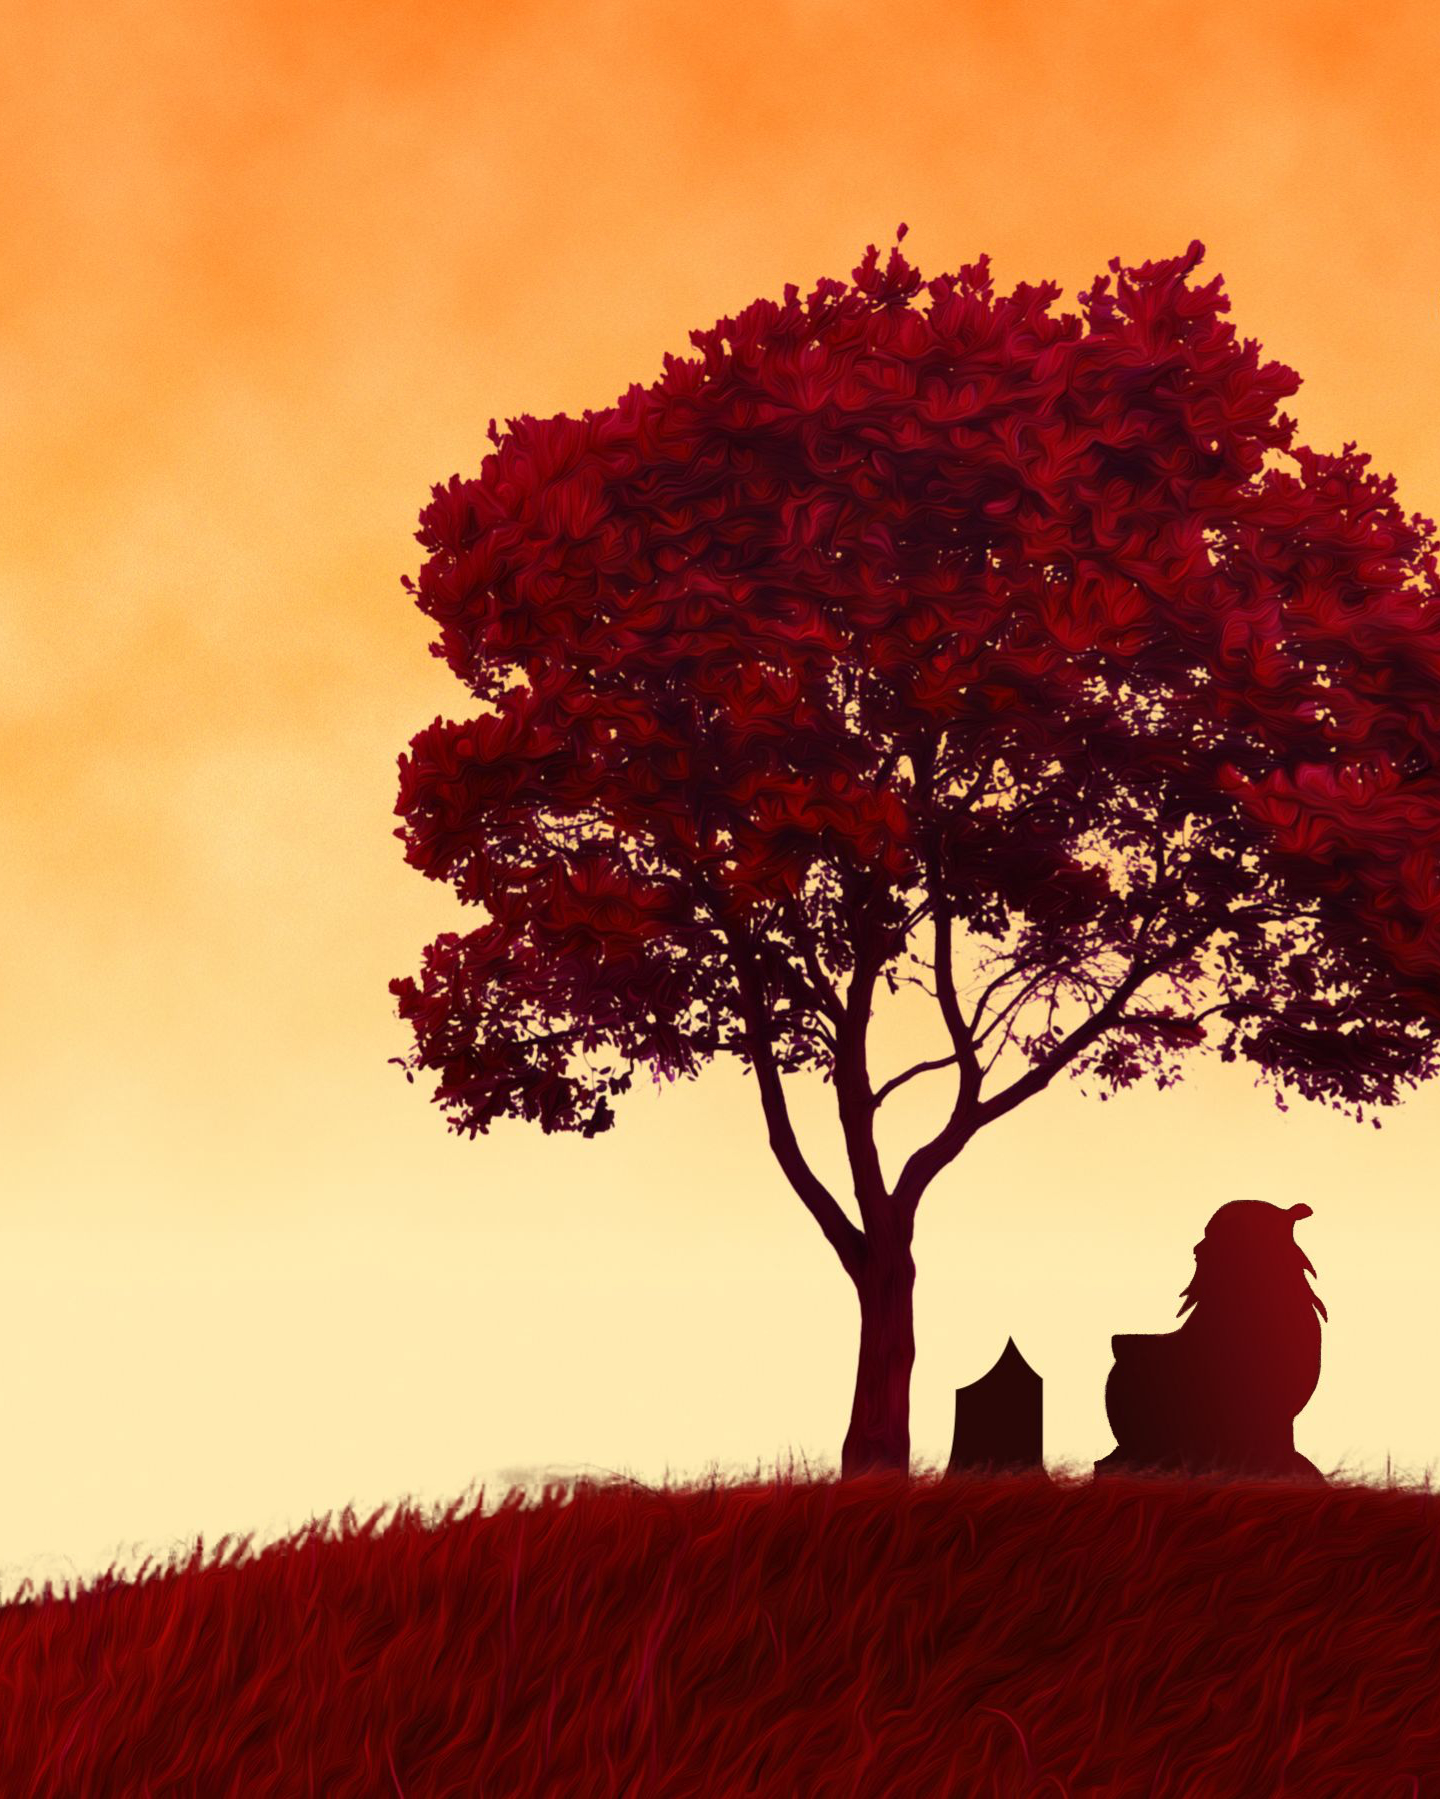 Iroh Wallpaper Iroh Discussion Images Phone Backgrounds Vintage